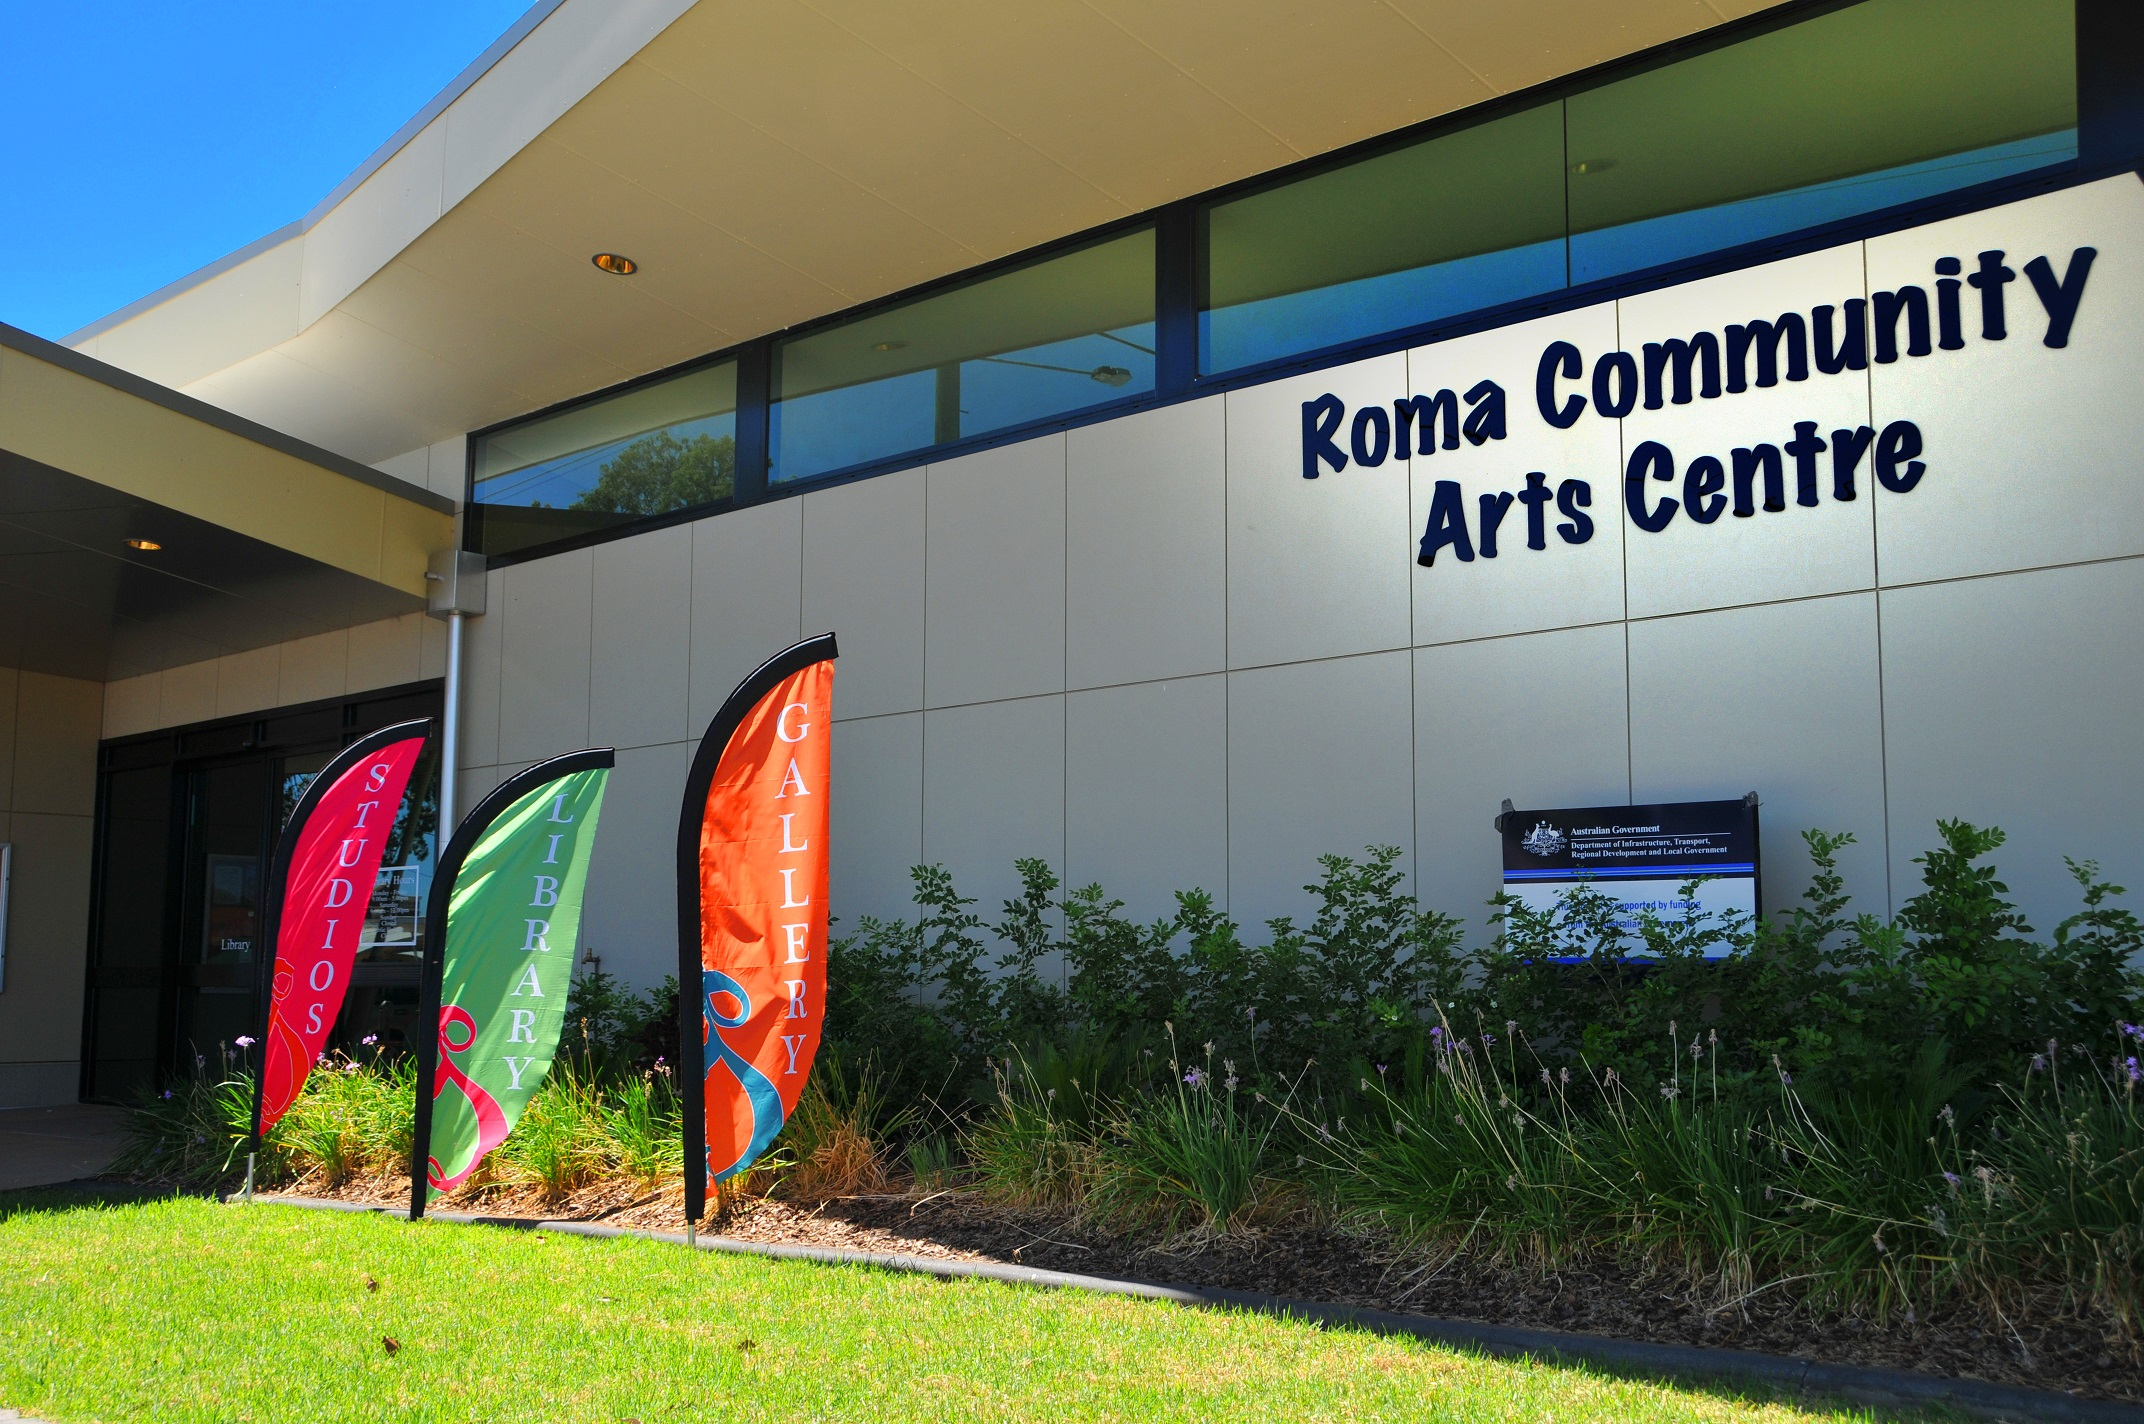 Roma Community Arts Centre